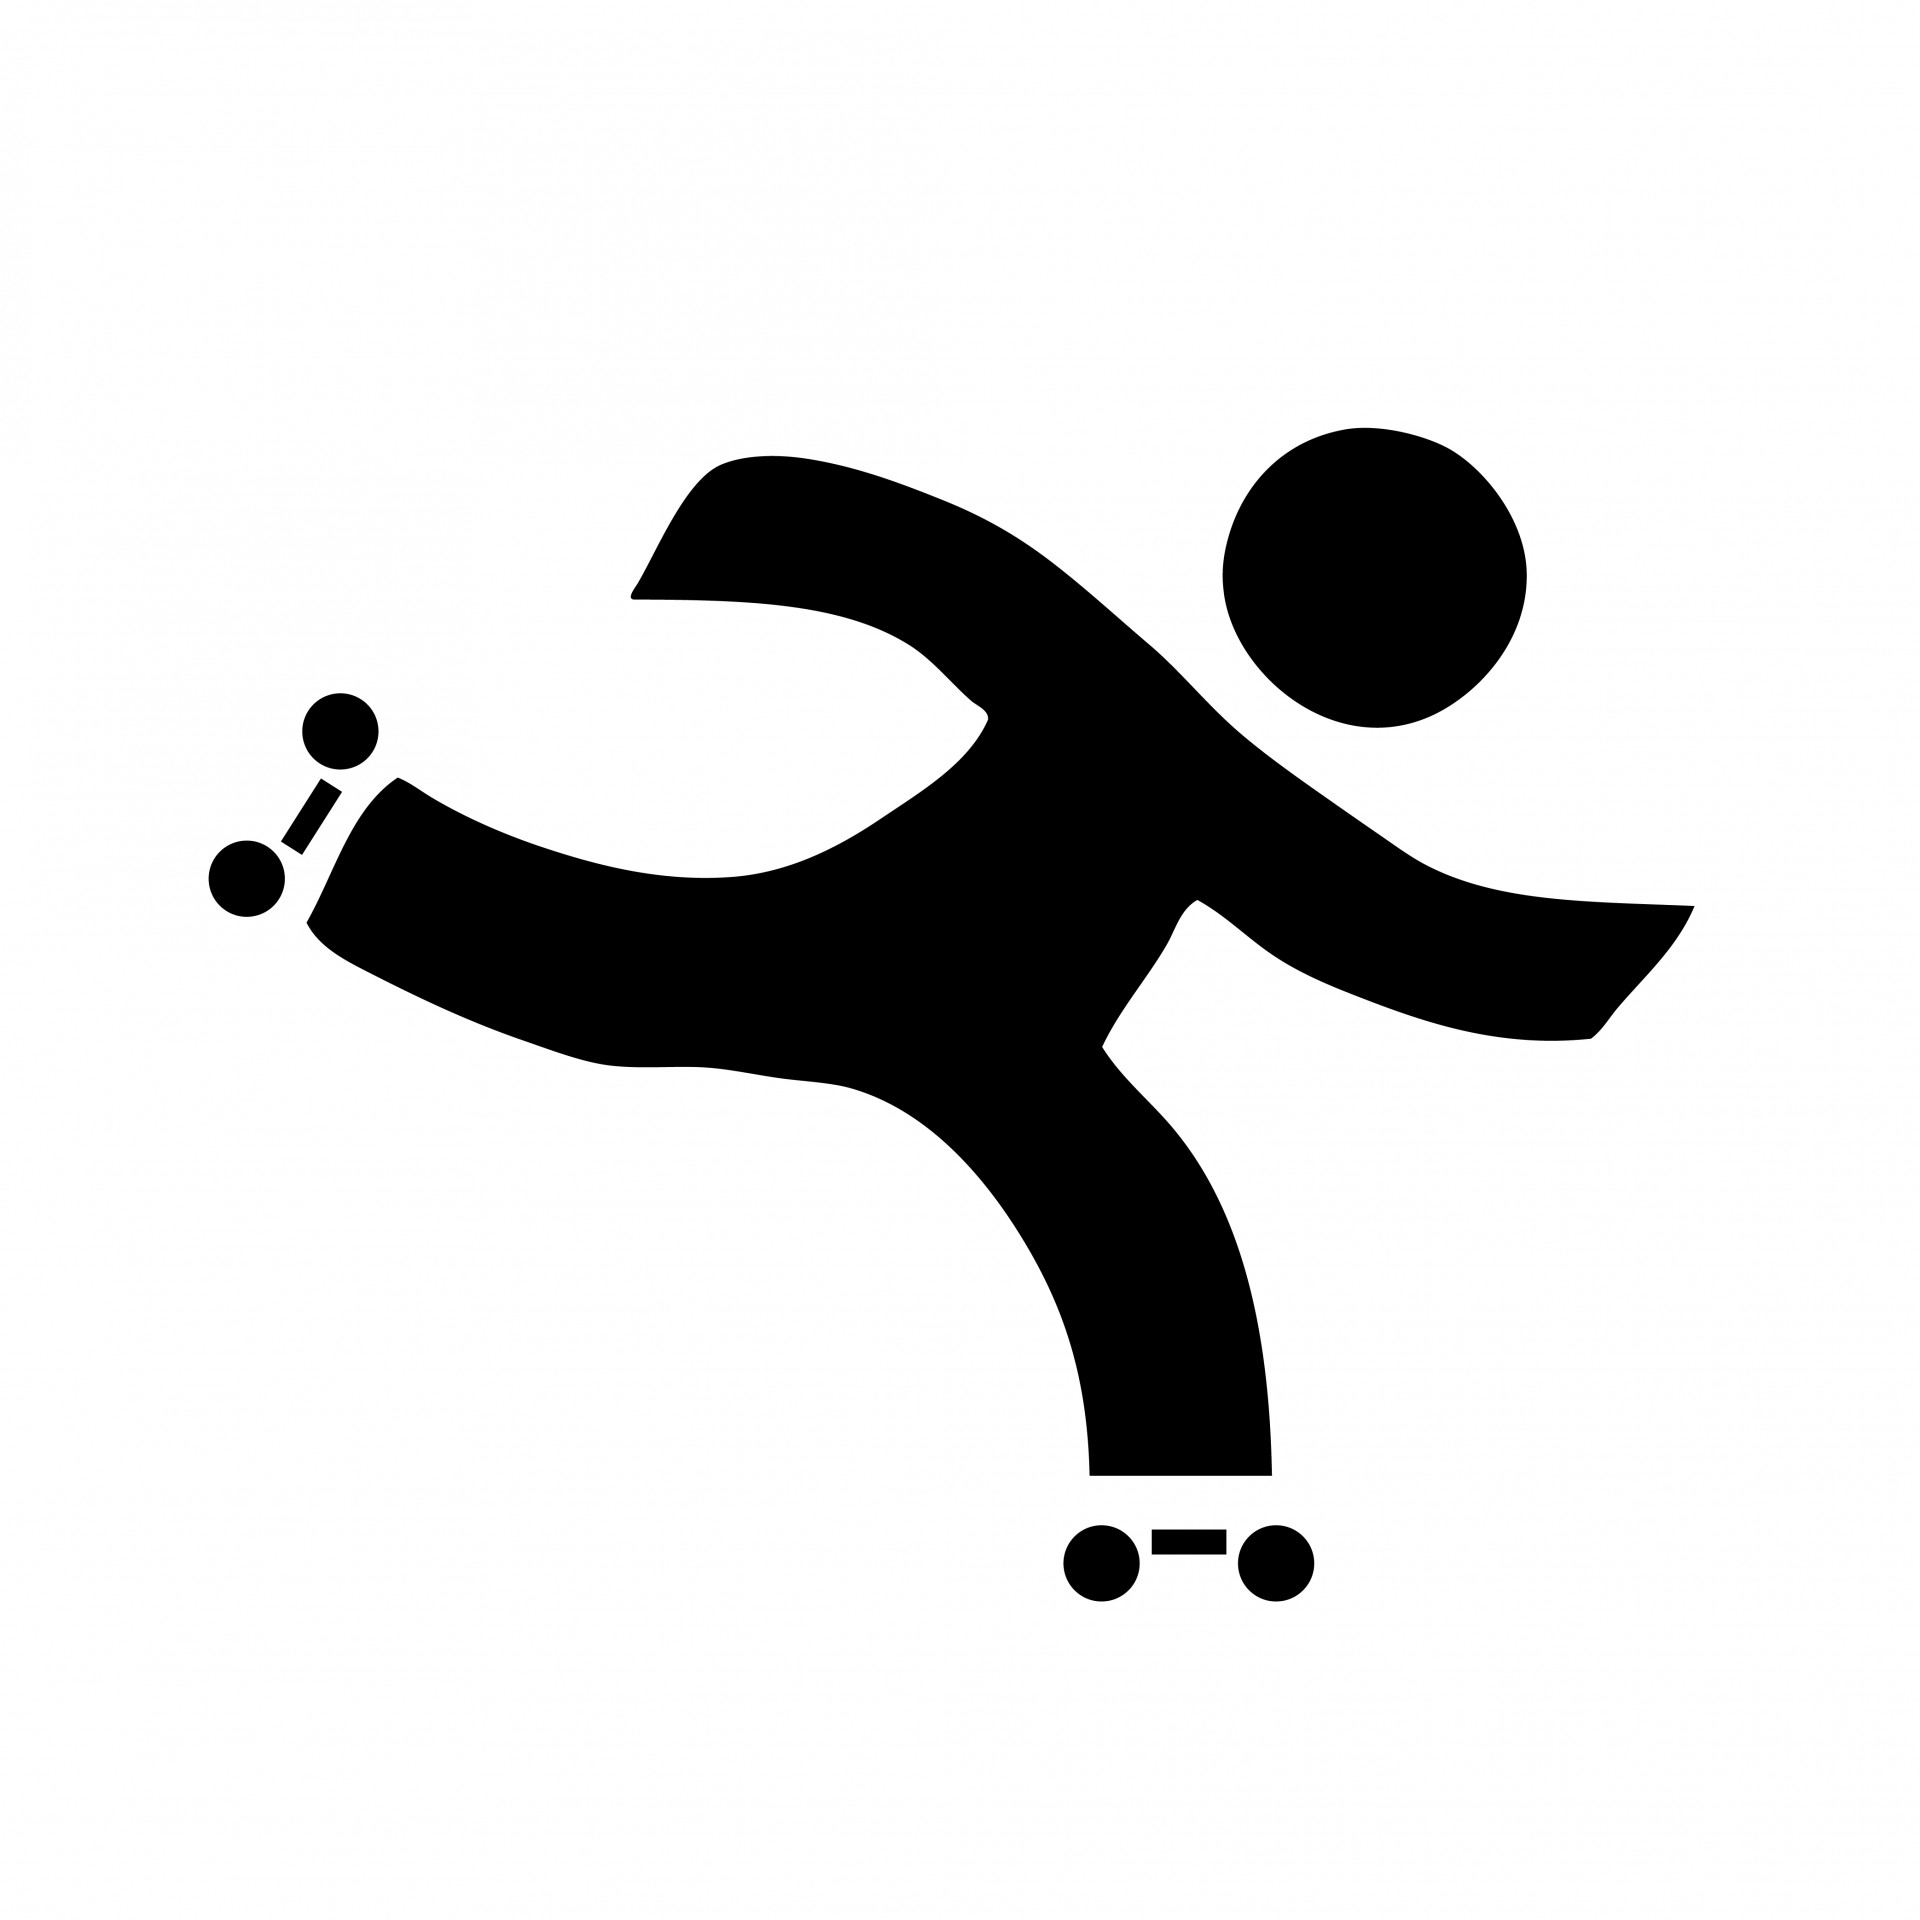 Roller free stock photo. Skating clipart clipart freeuse